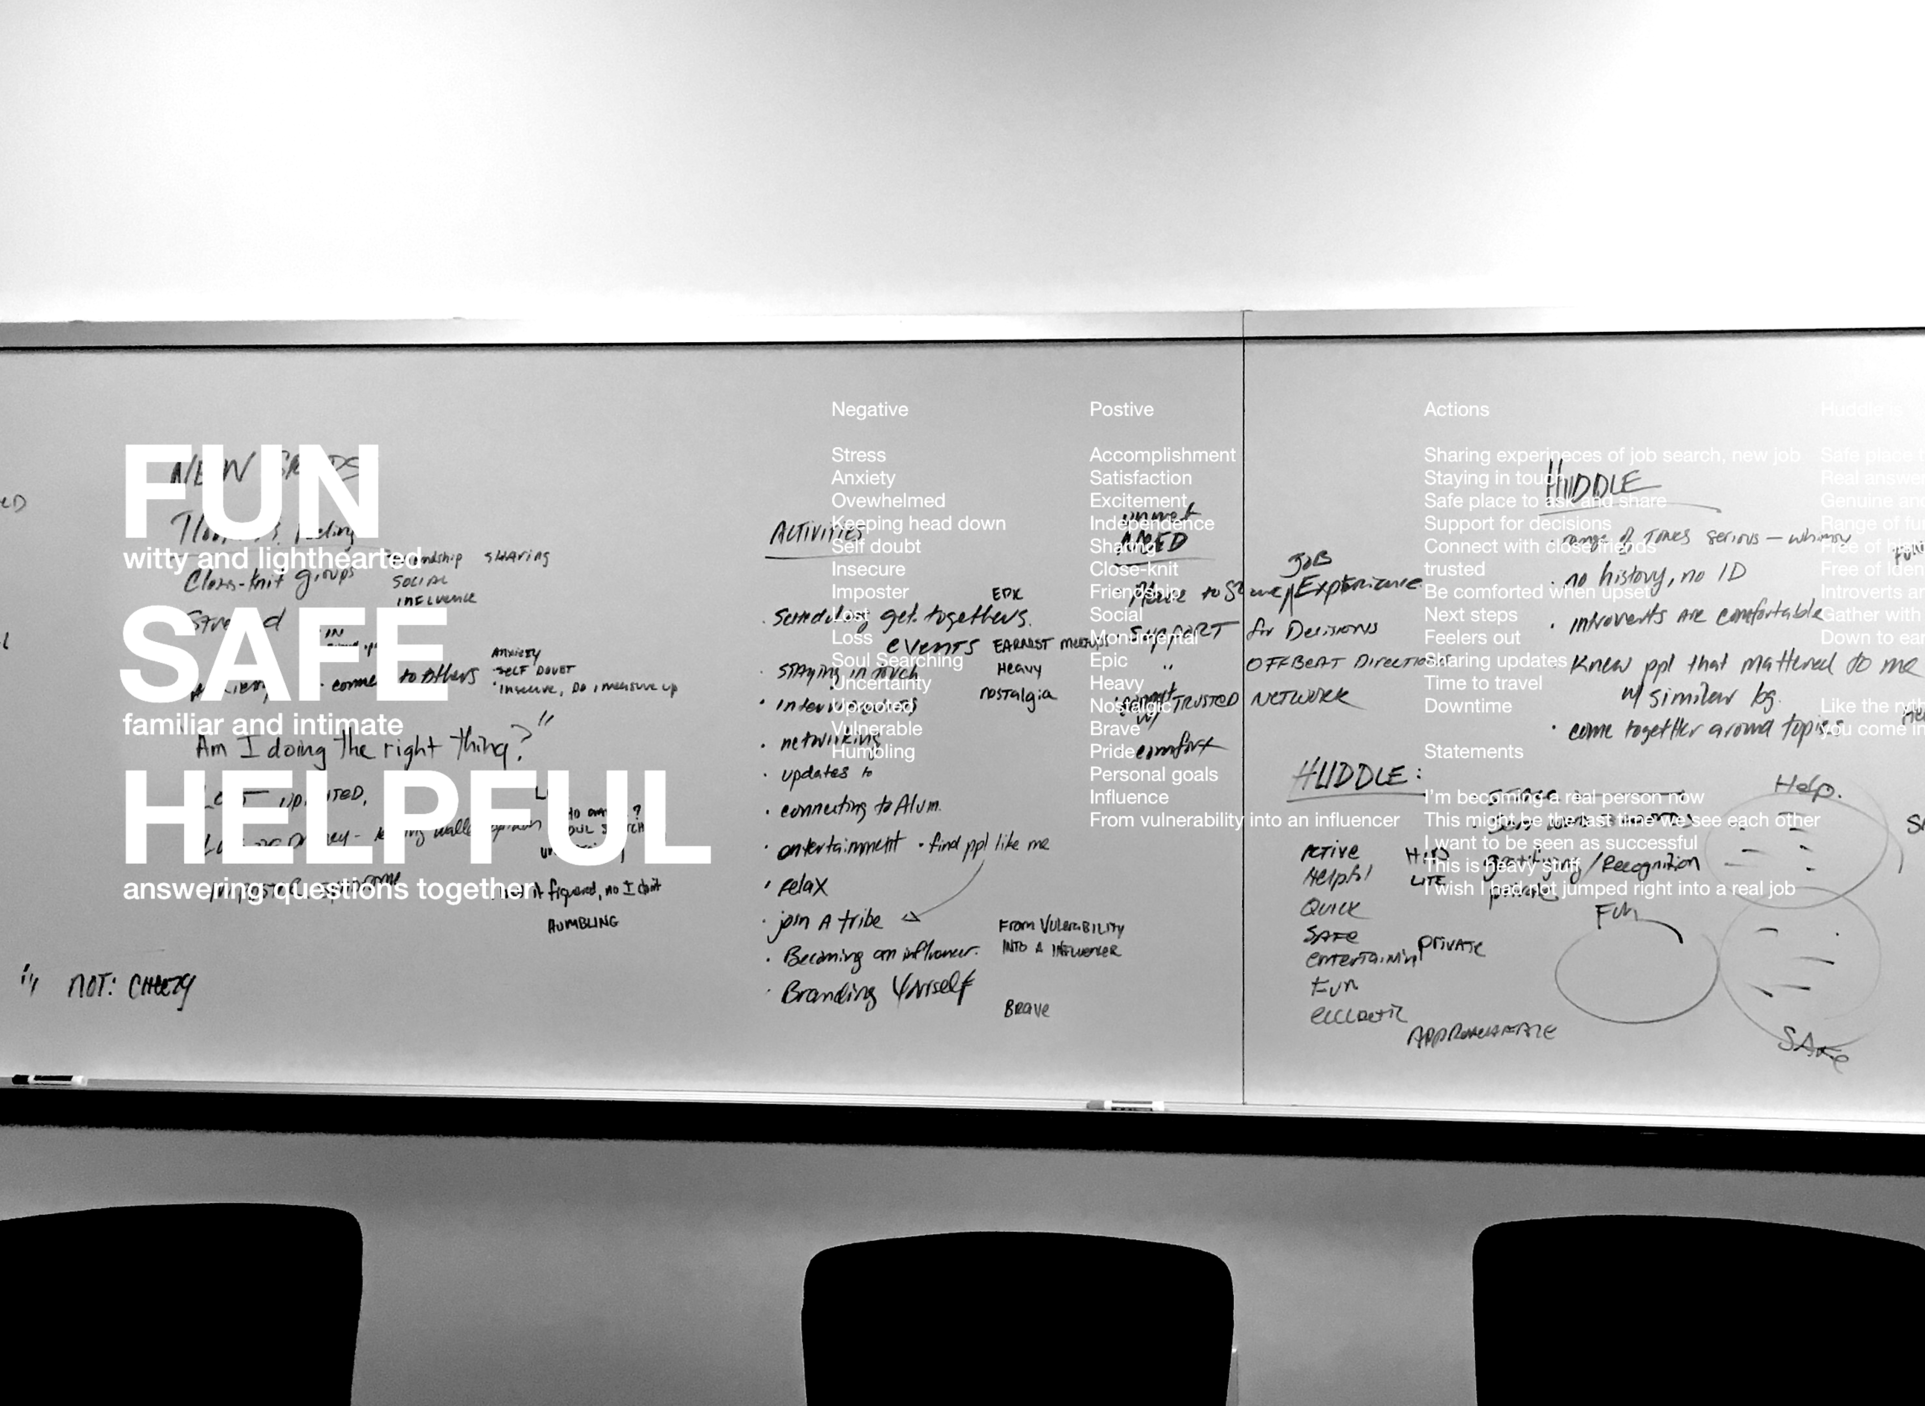 Rebrand - For our first external test, we labored to identify an audience that had lots of questions, we decided on recent college grads. I initiated a redesign of the UI so it would be tailored for the new grads and started with a group exercise to discuss brand attributes.